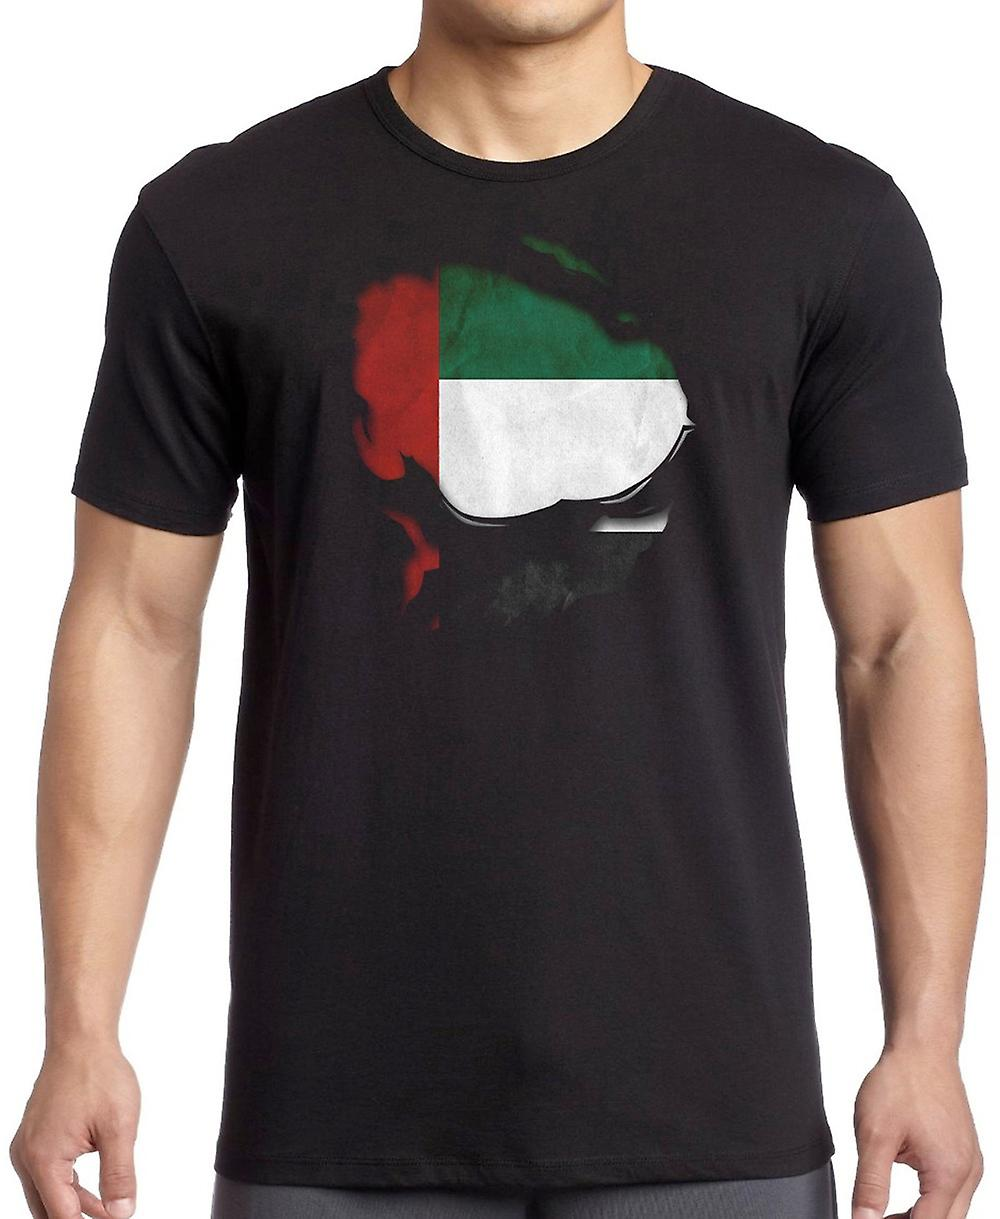 United Arab Emirates Ripped Effect Under Shirt T Shirt